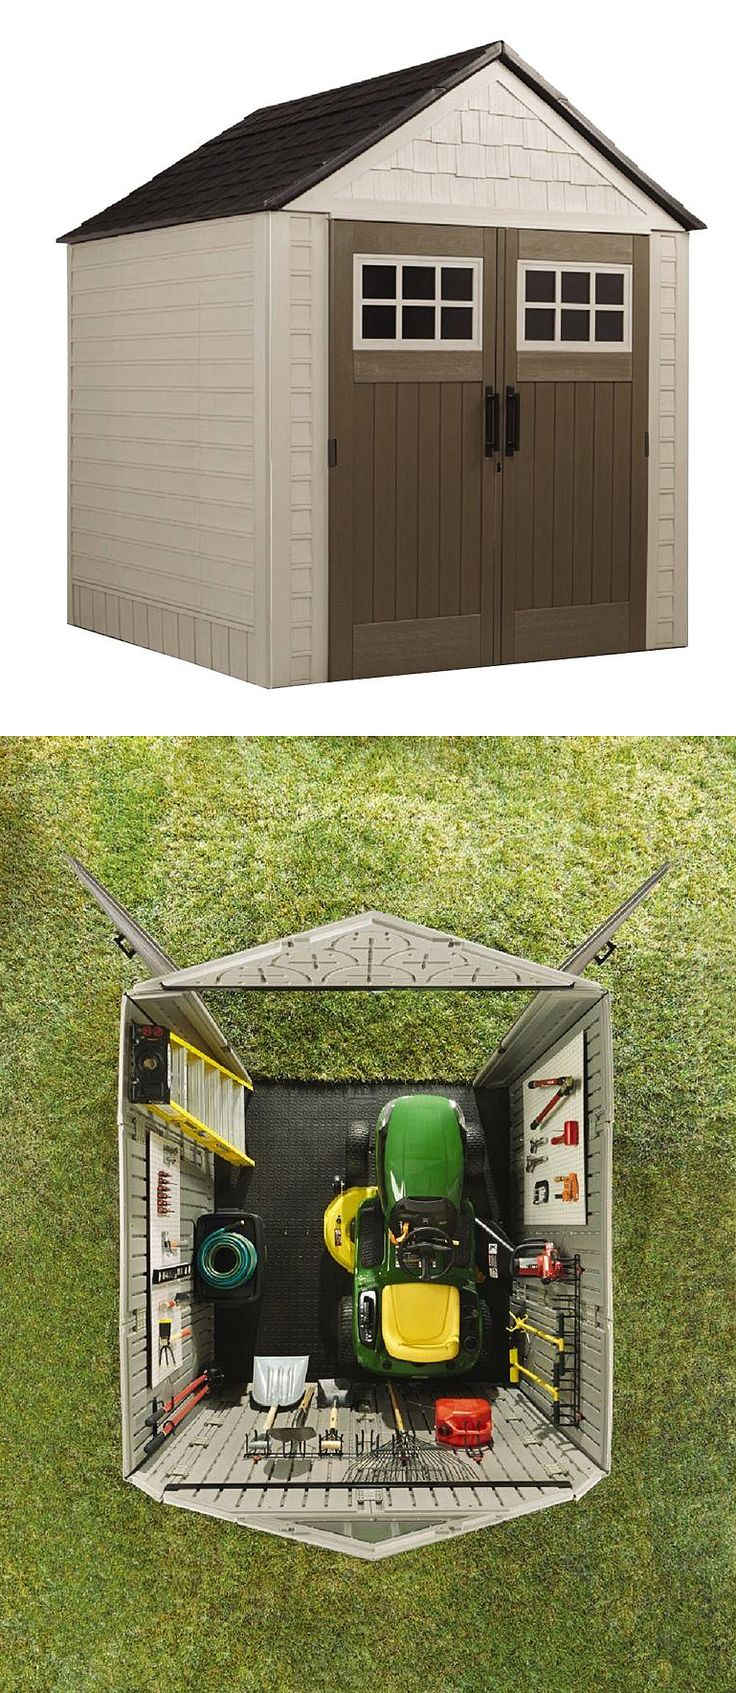 There's are good reasons this is one of The Home Depot's most popular storage sheds. It's the right size for storing commonly used yard equipment. It's super durable. And it looks great. Check this one out when you're ready to upgrade your back yard storage.